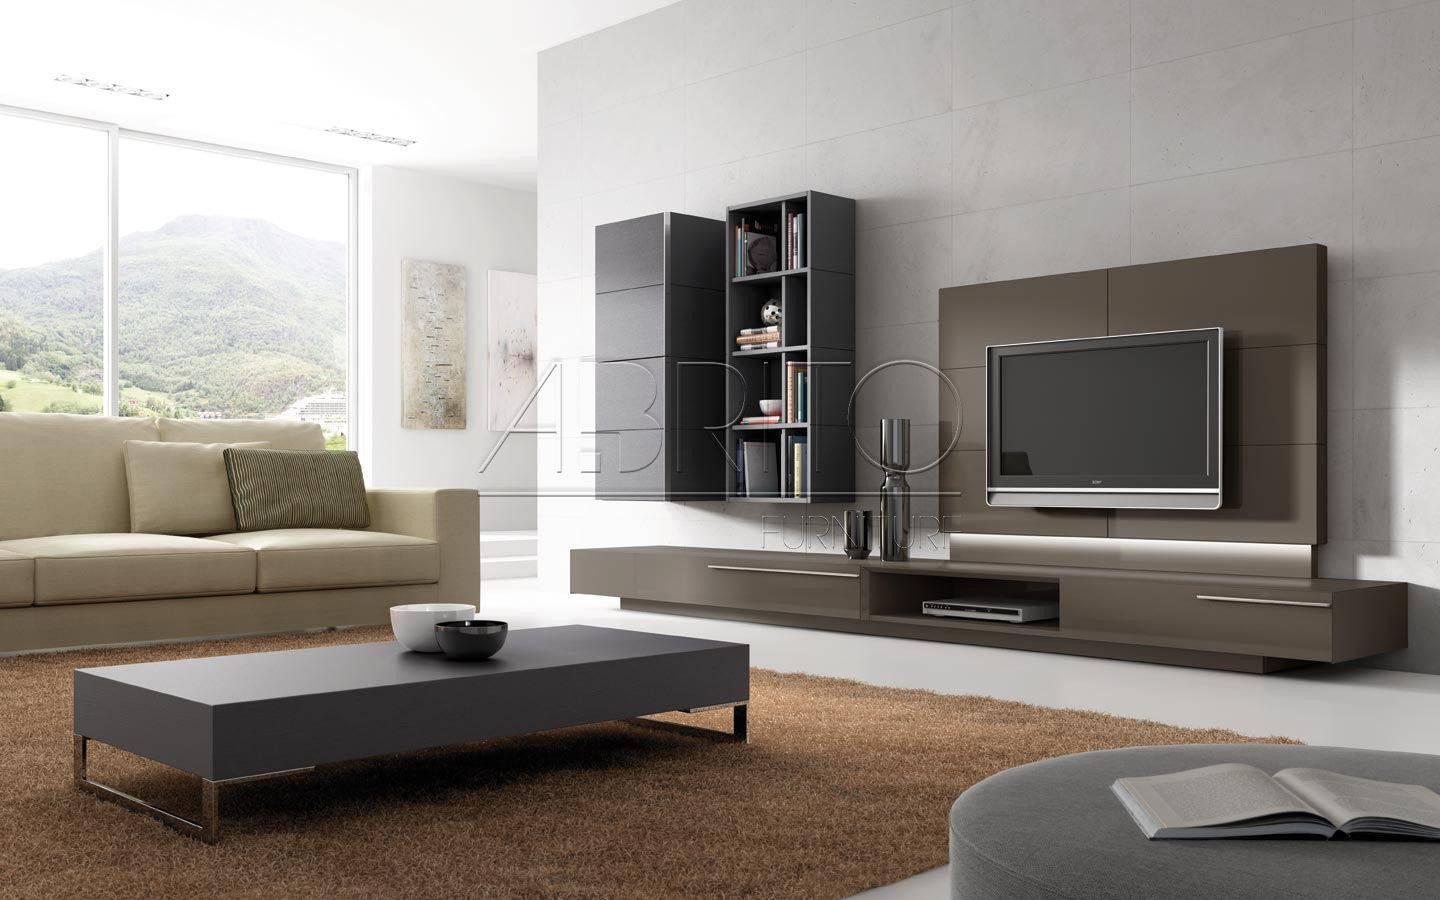 Marvelous Modern Contemporary Tv Wall Units 15 With Additional Intended For Contemporary Tv Wall Units (View 2 of 15)